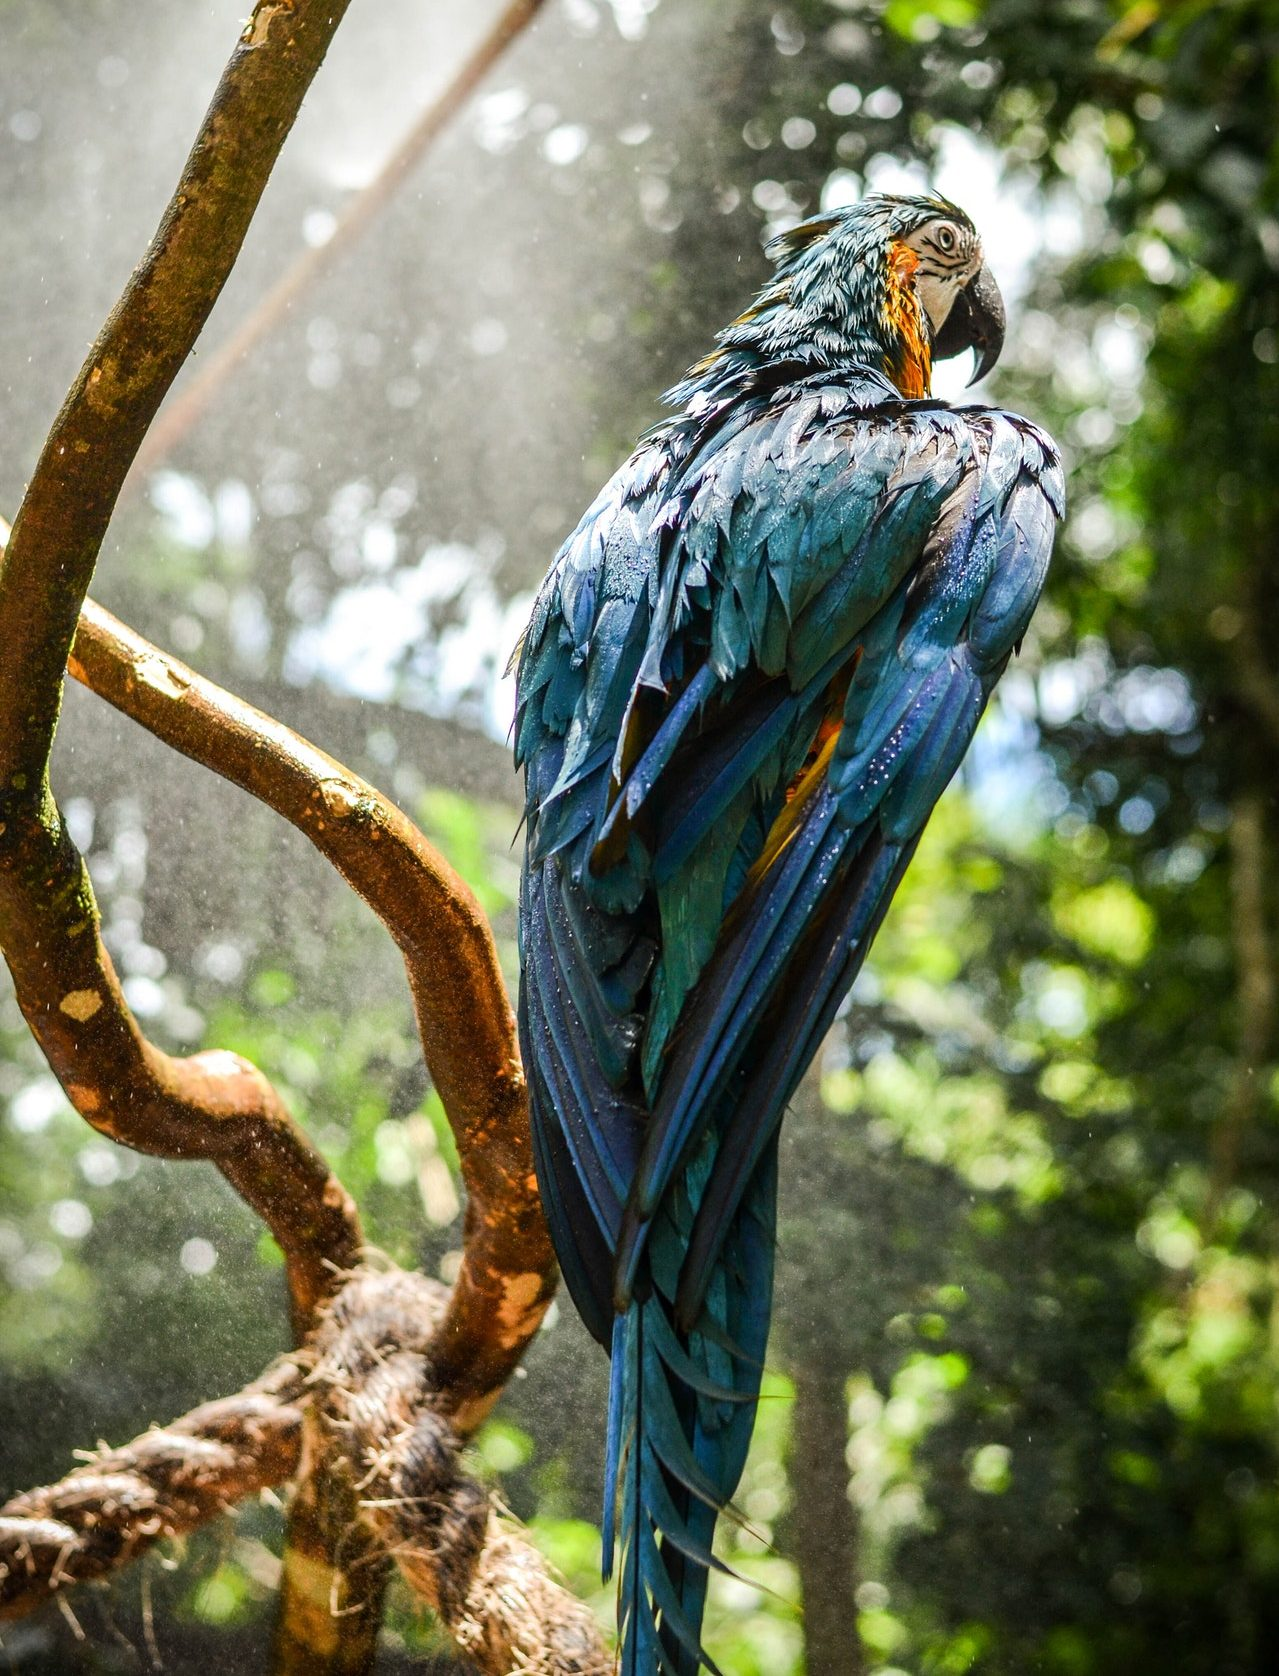 blue macaws live in World Land Trust nature reserves